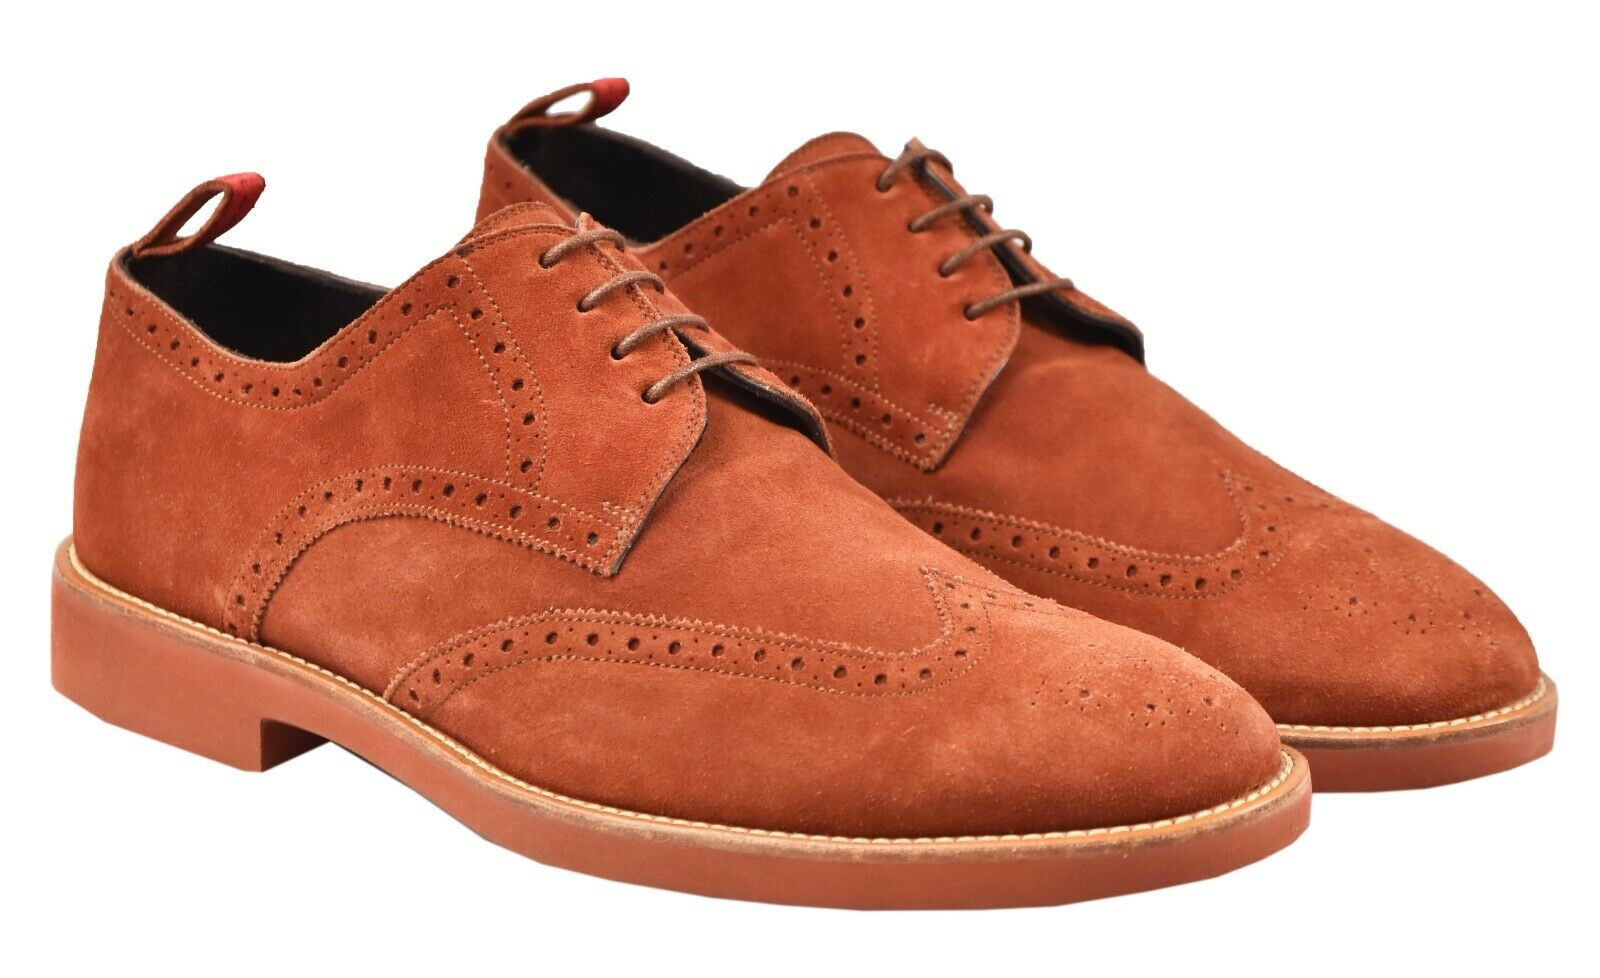 Nouvelle robe KITON Chaussures 100% cuir taille 9 US 42 EU 19O153